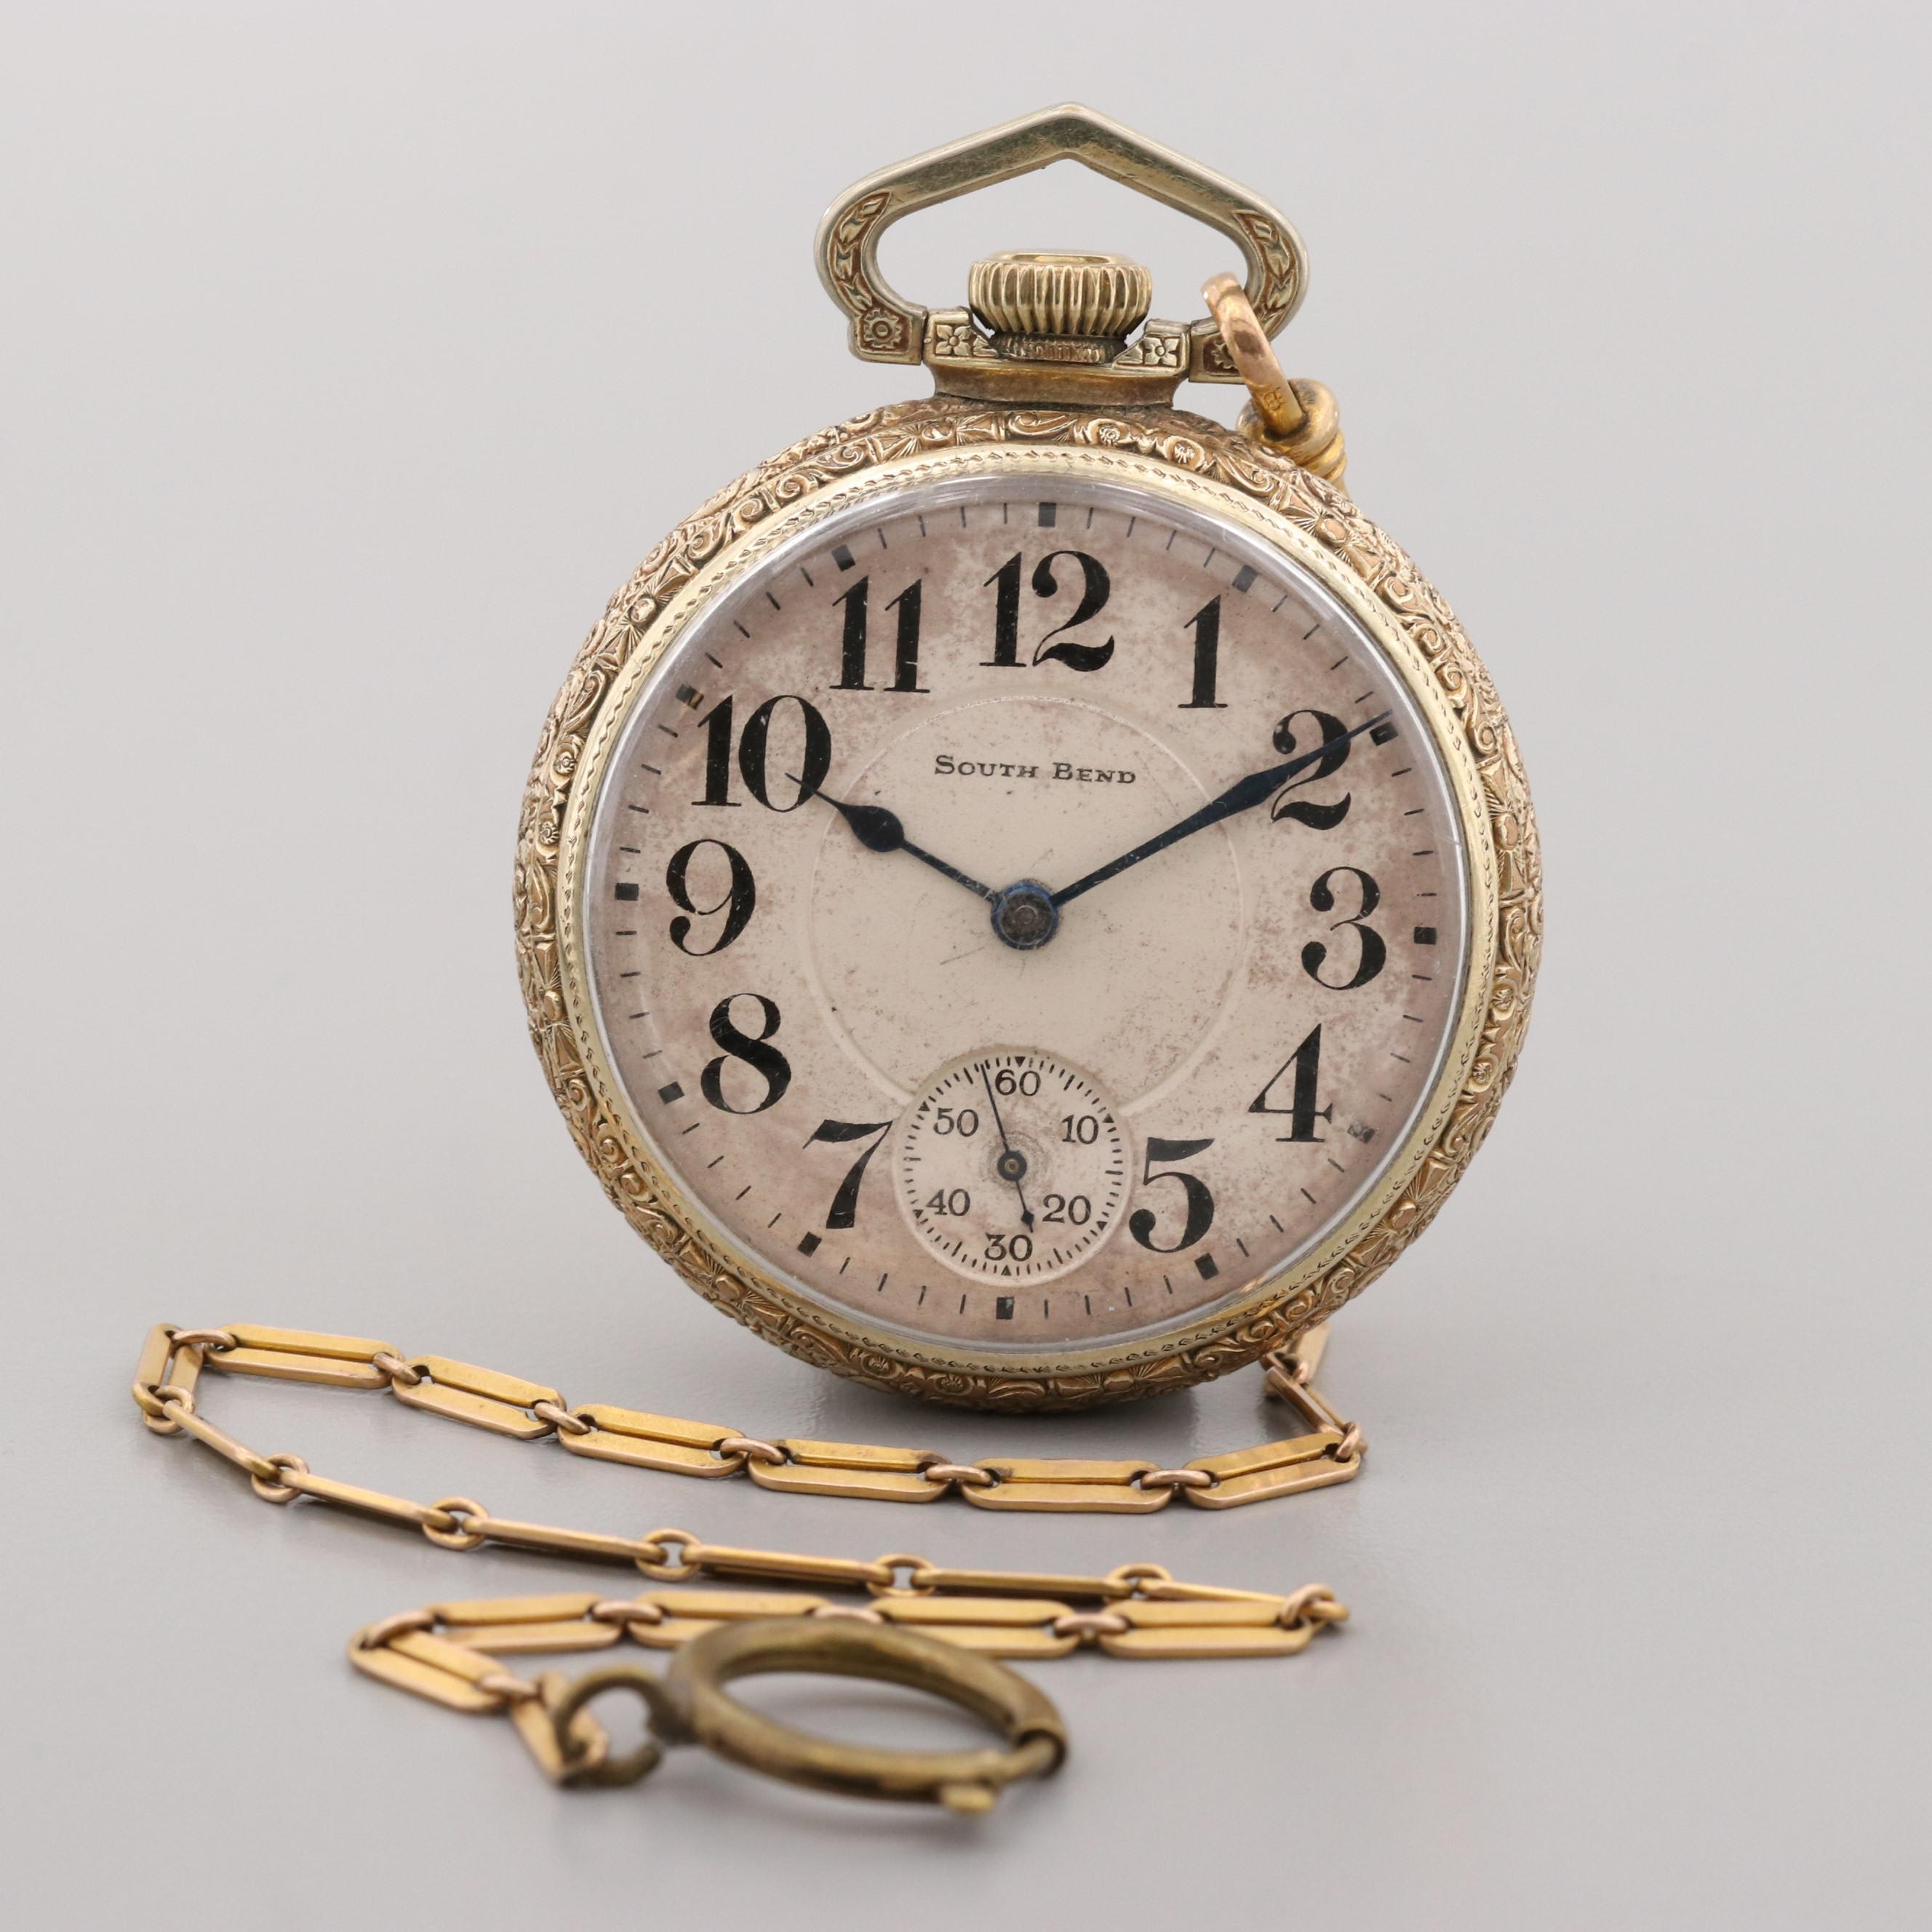 South Bend Gold Filled Pocket Watch with Fob Chain, 1926